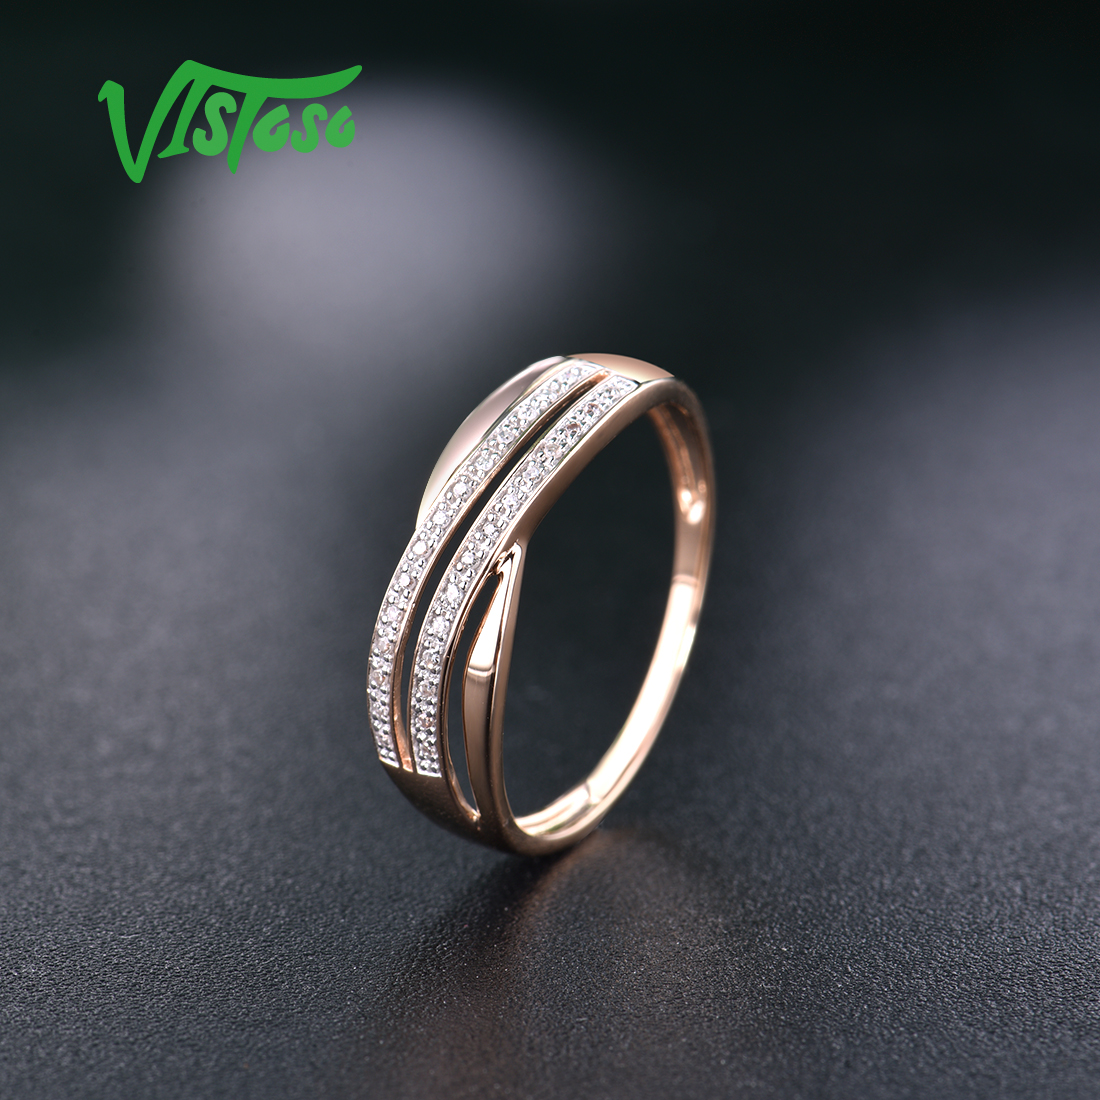 VISTOSO Genuine 14K 585 Rose Gold Chic Rings For Lady